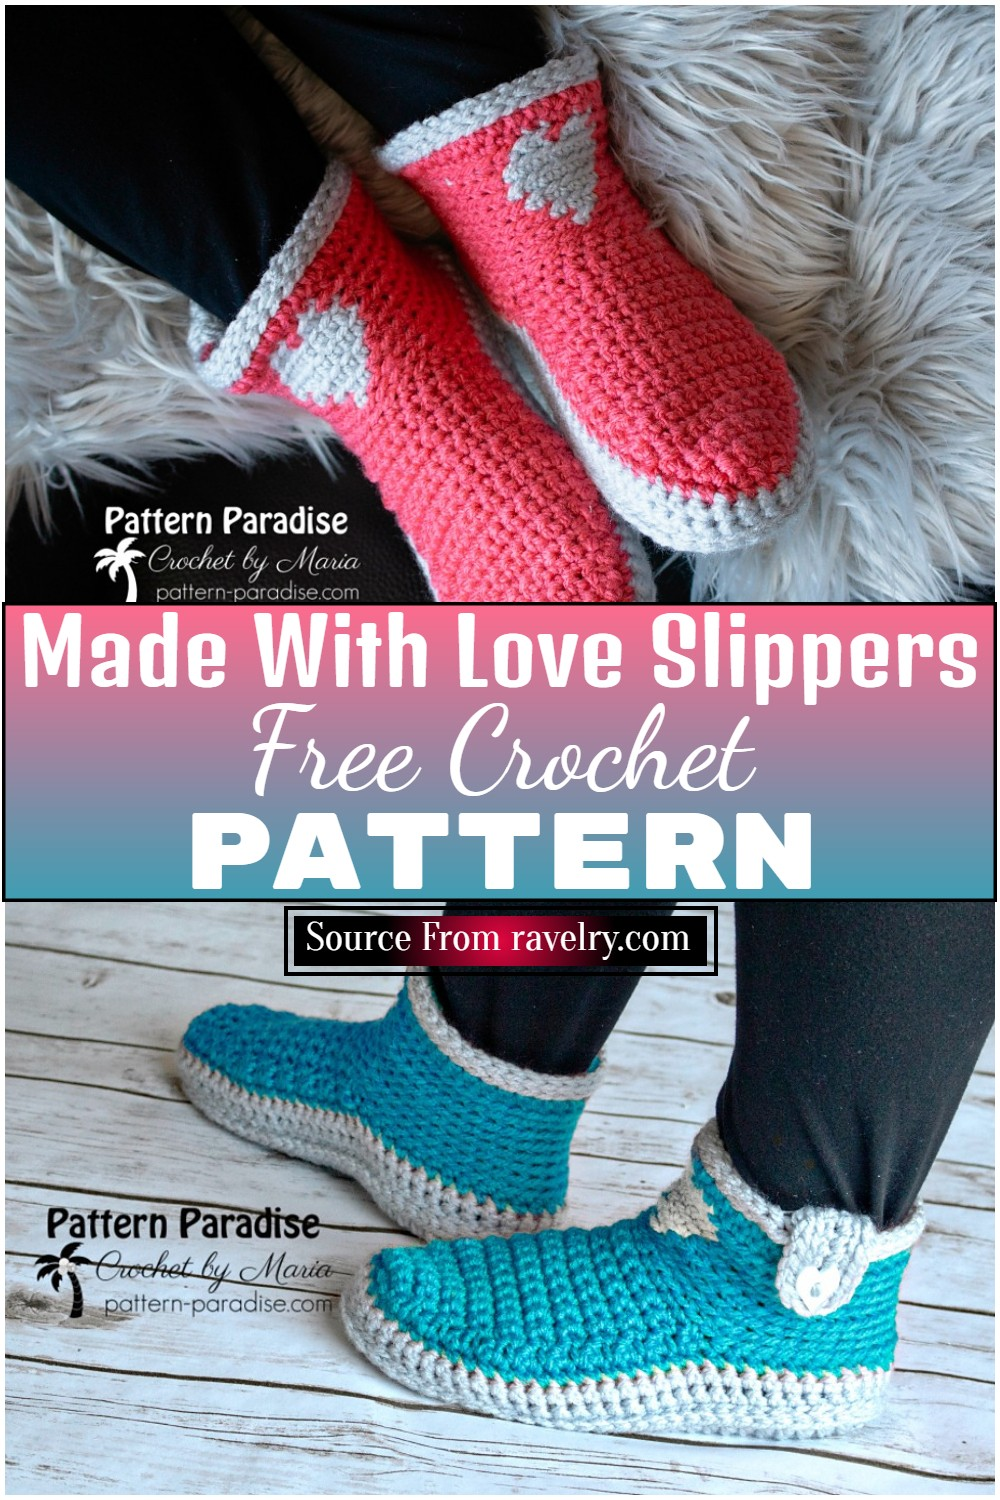 Made With Love Slippers